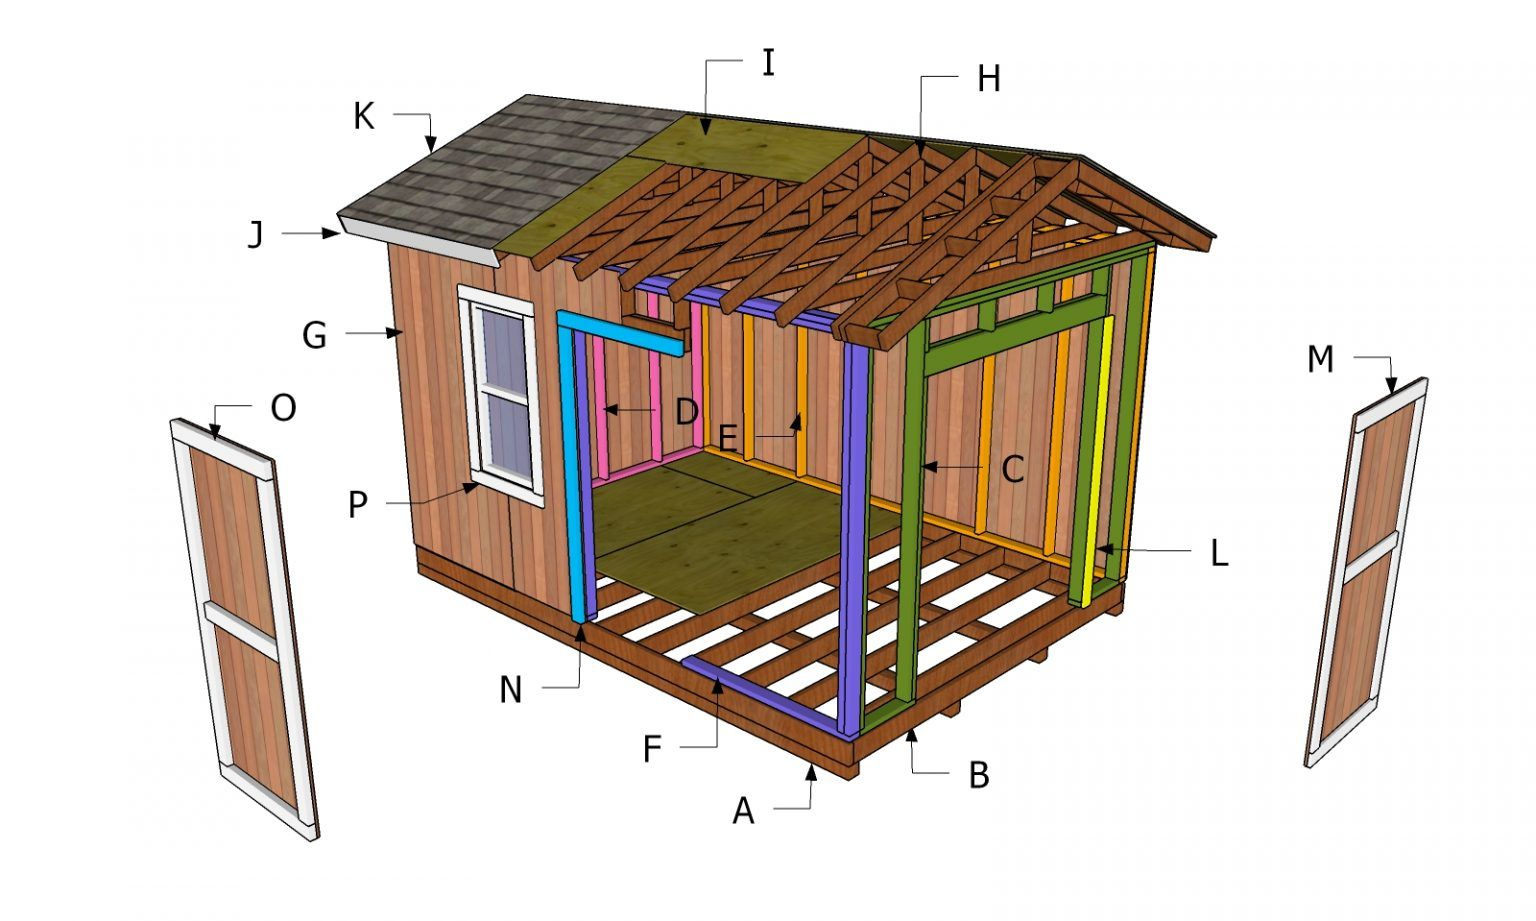 10x14 Gable Shed Roof Plans Howtospecialist How To Build Step By Step Diy Plans In 2020 Diy Plans Roof Plan Shed Plans